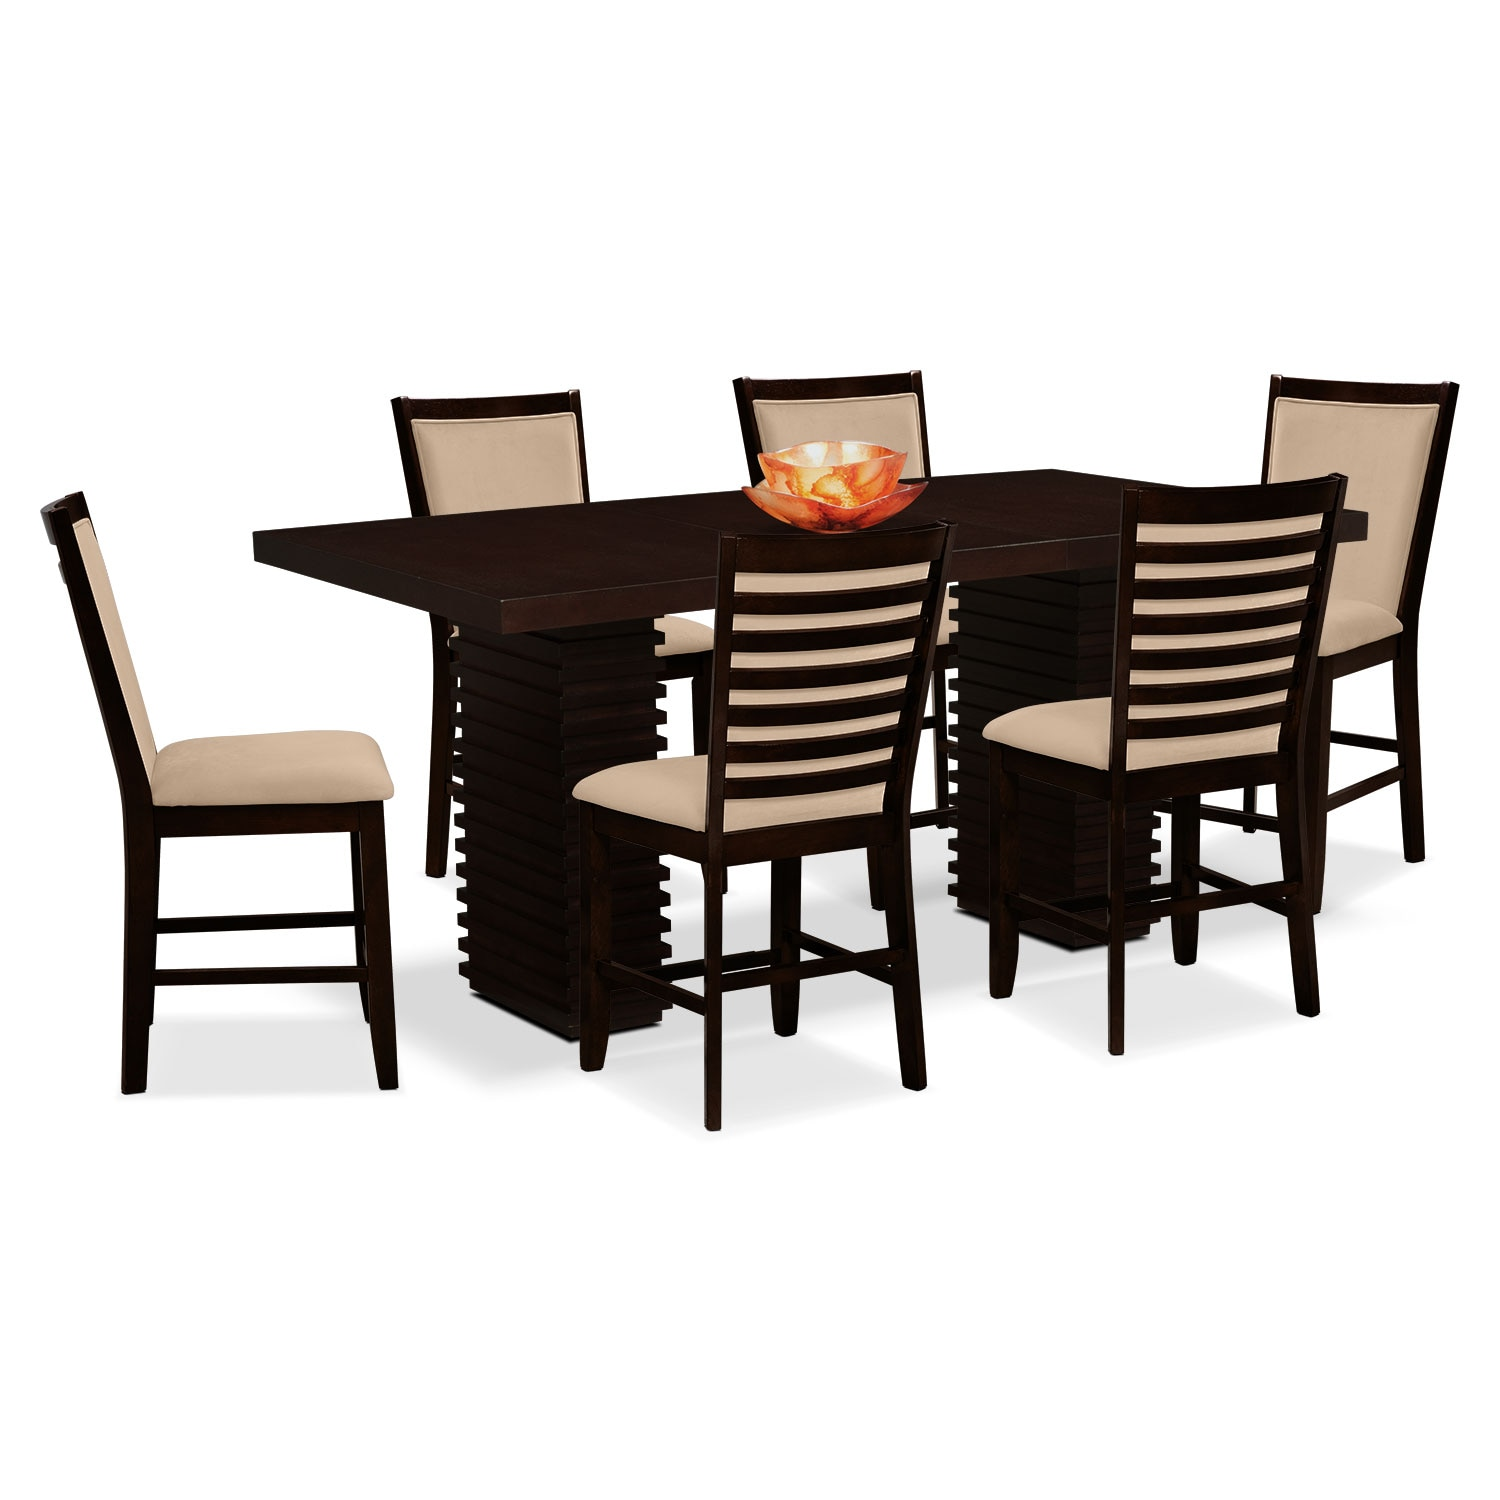 Paragon Counter-Height Table and 6 Chairs - Camel